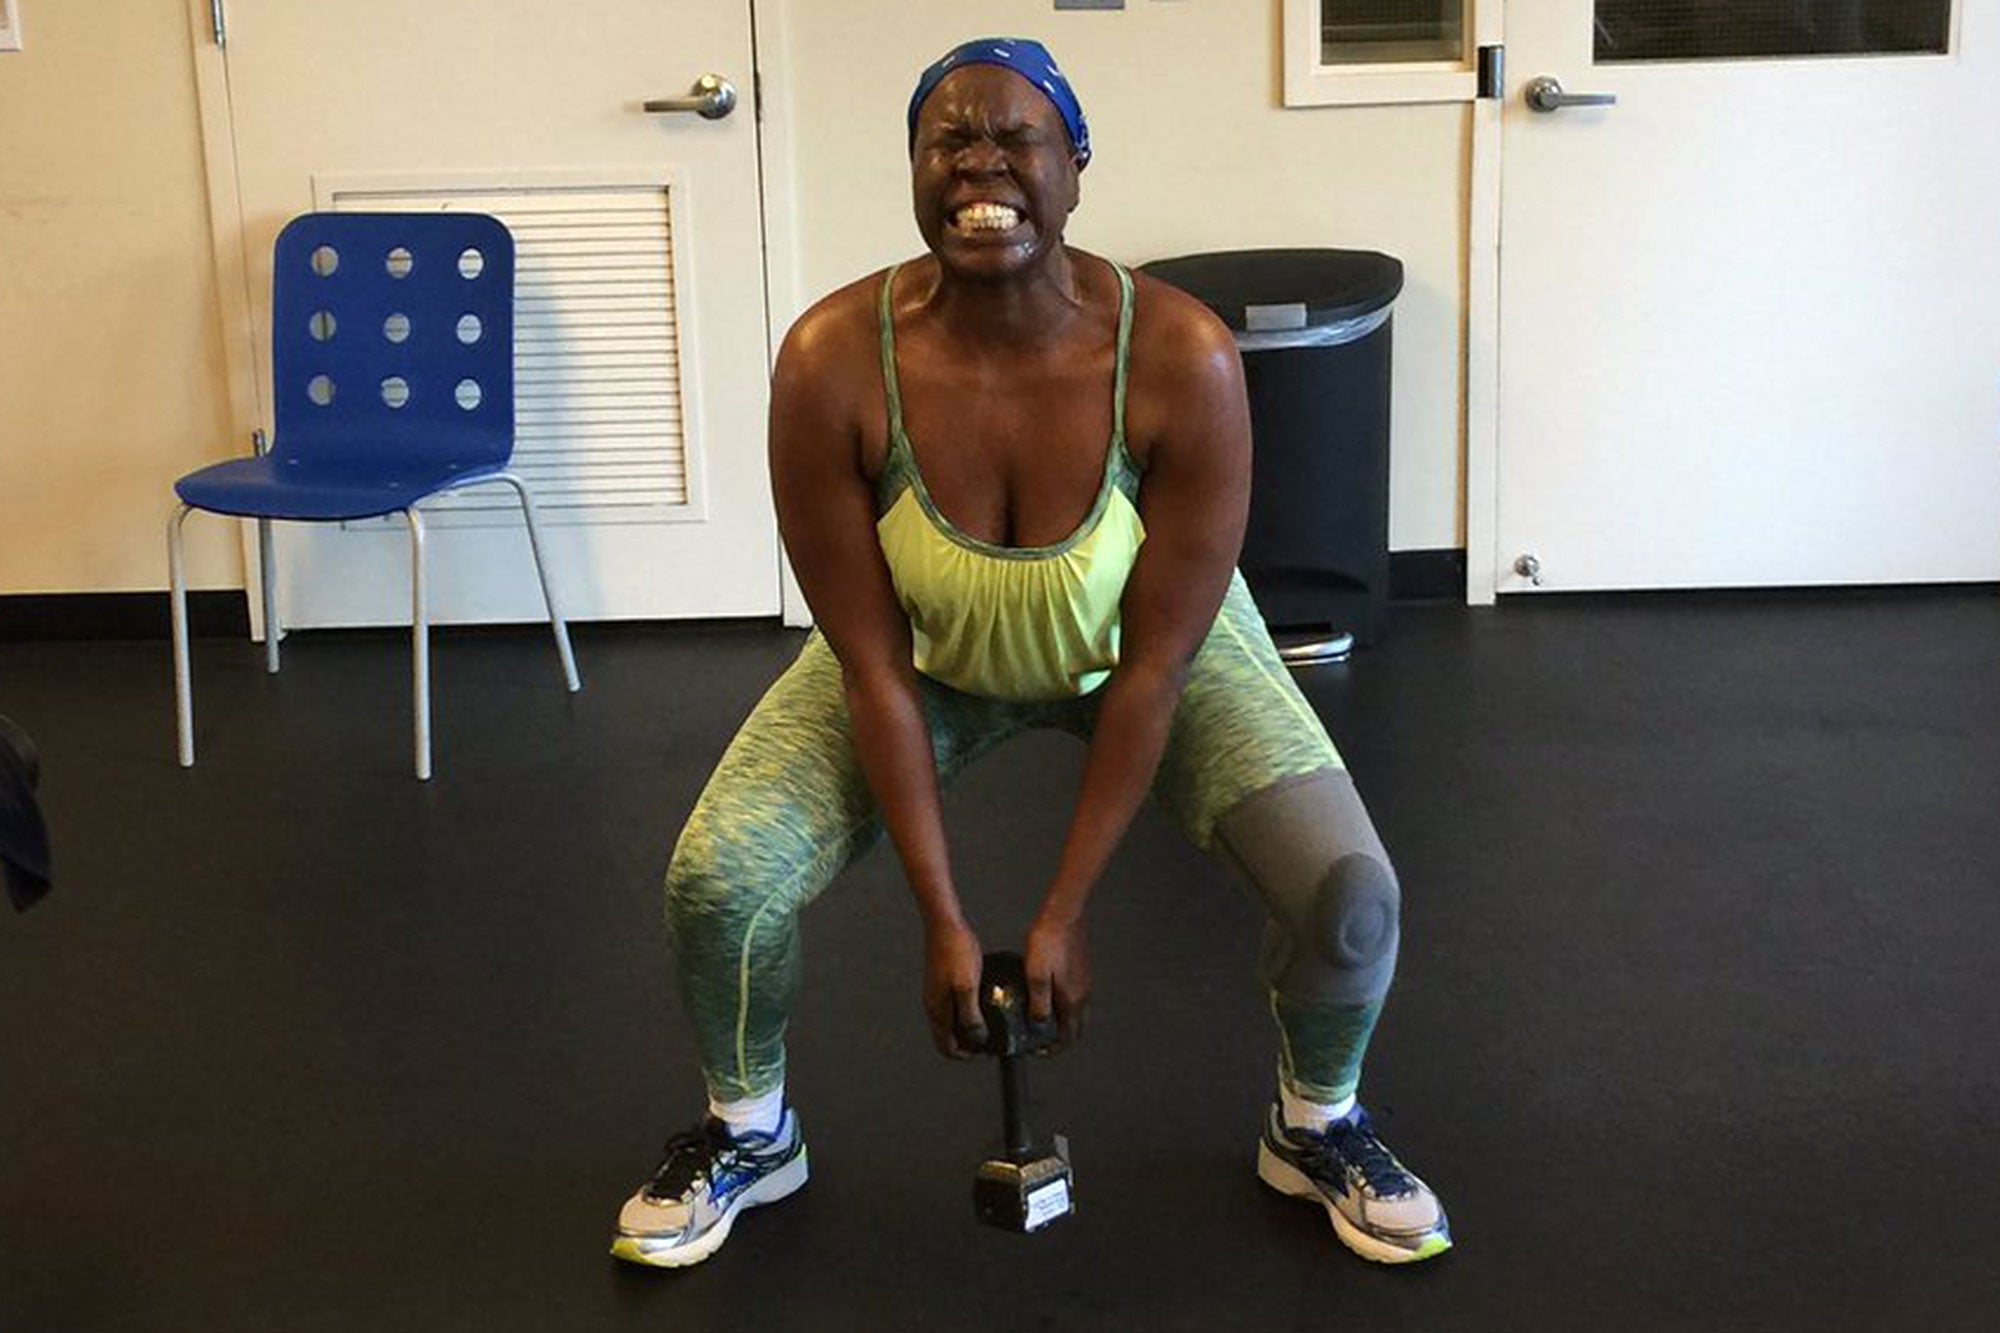 Leslie Jones Jokes That Her Trainer 'Tried To Kill Me' During An Intense Workout Session